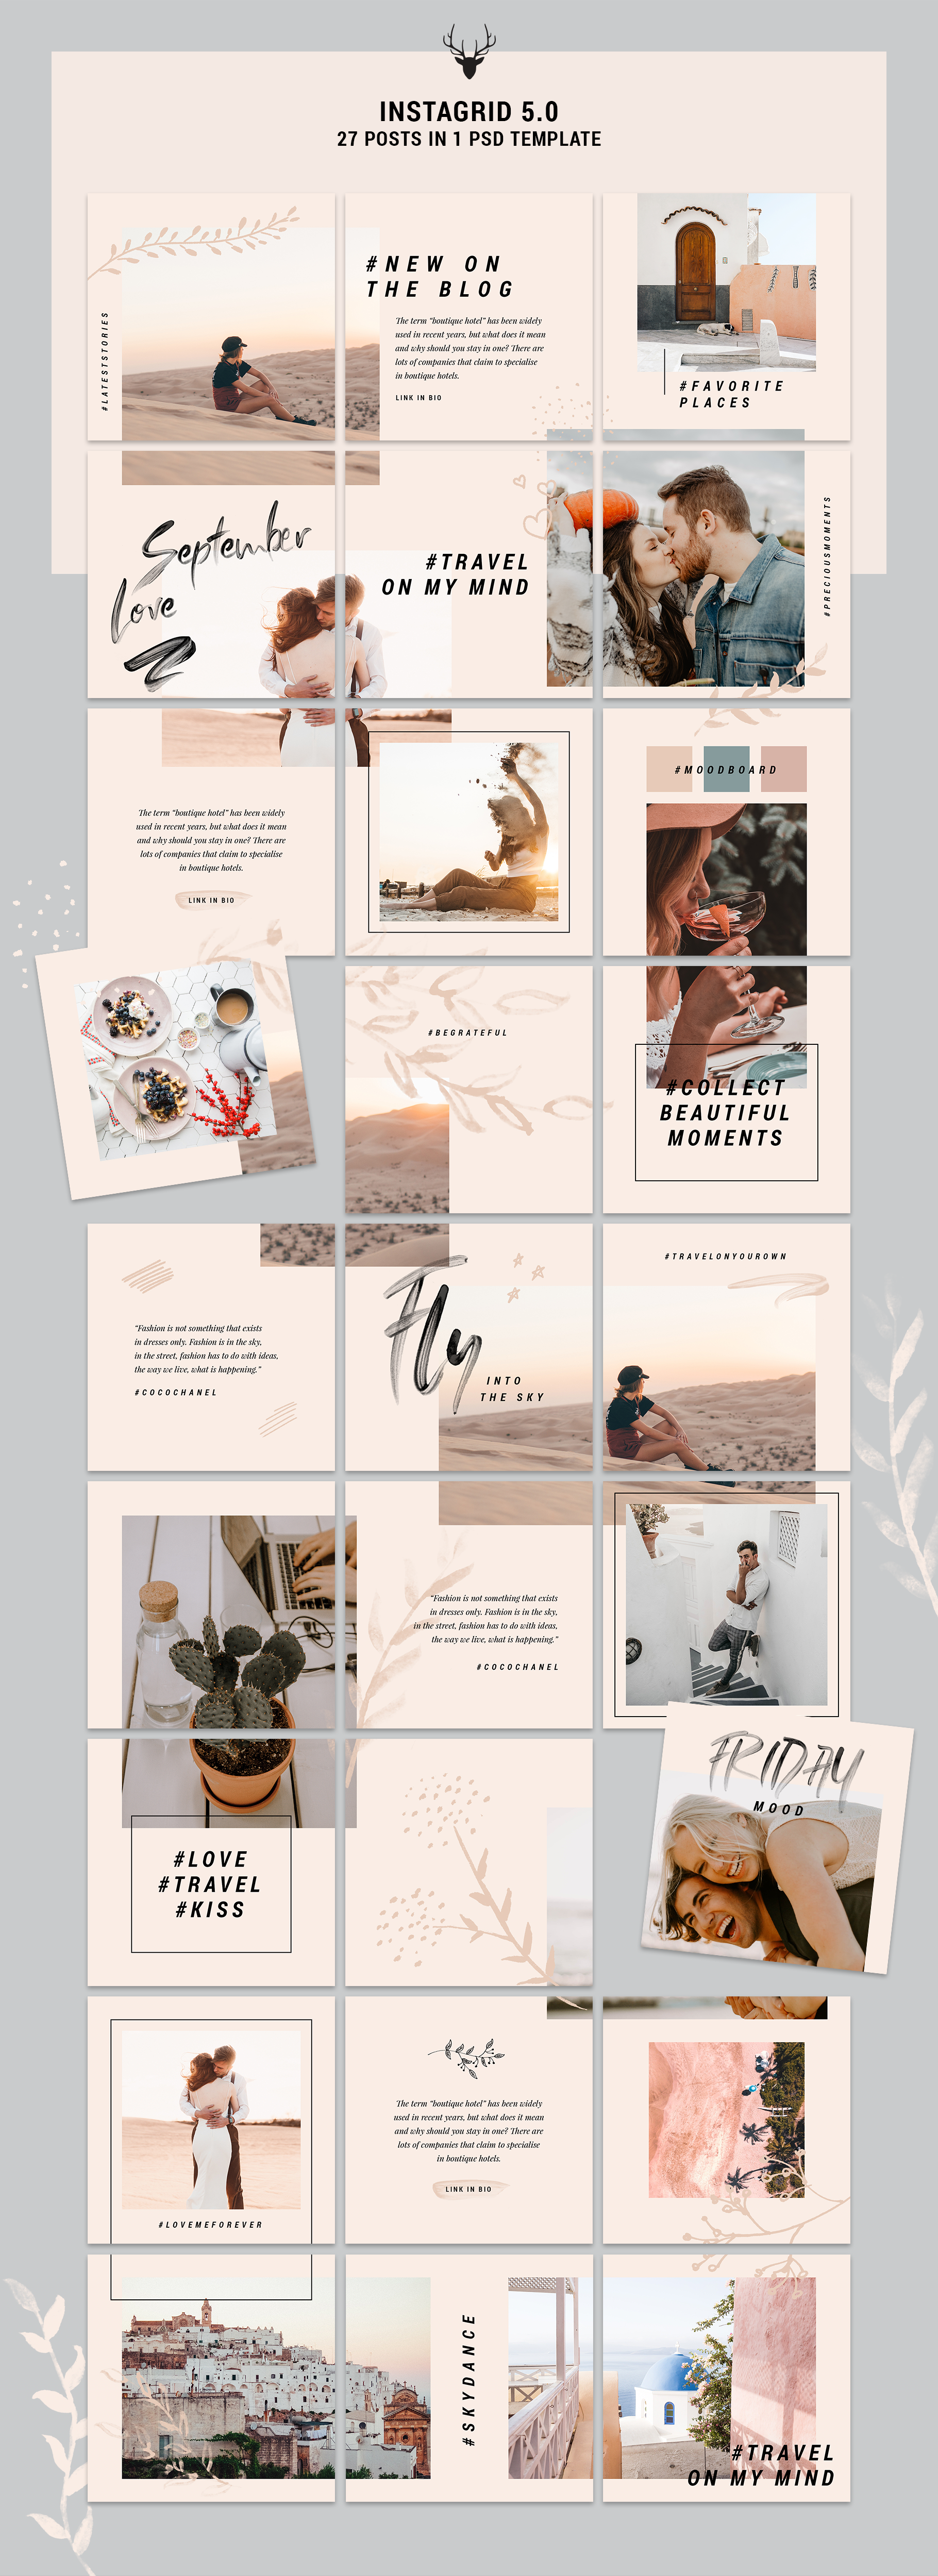 InstaGrid 5 0 - Creative & Modern Instagram Puzzle Template | Resume